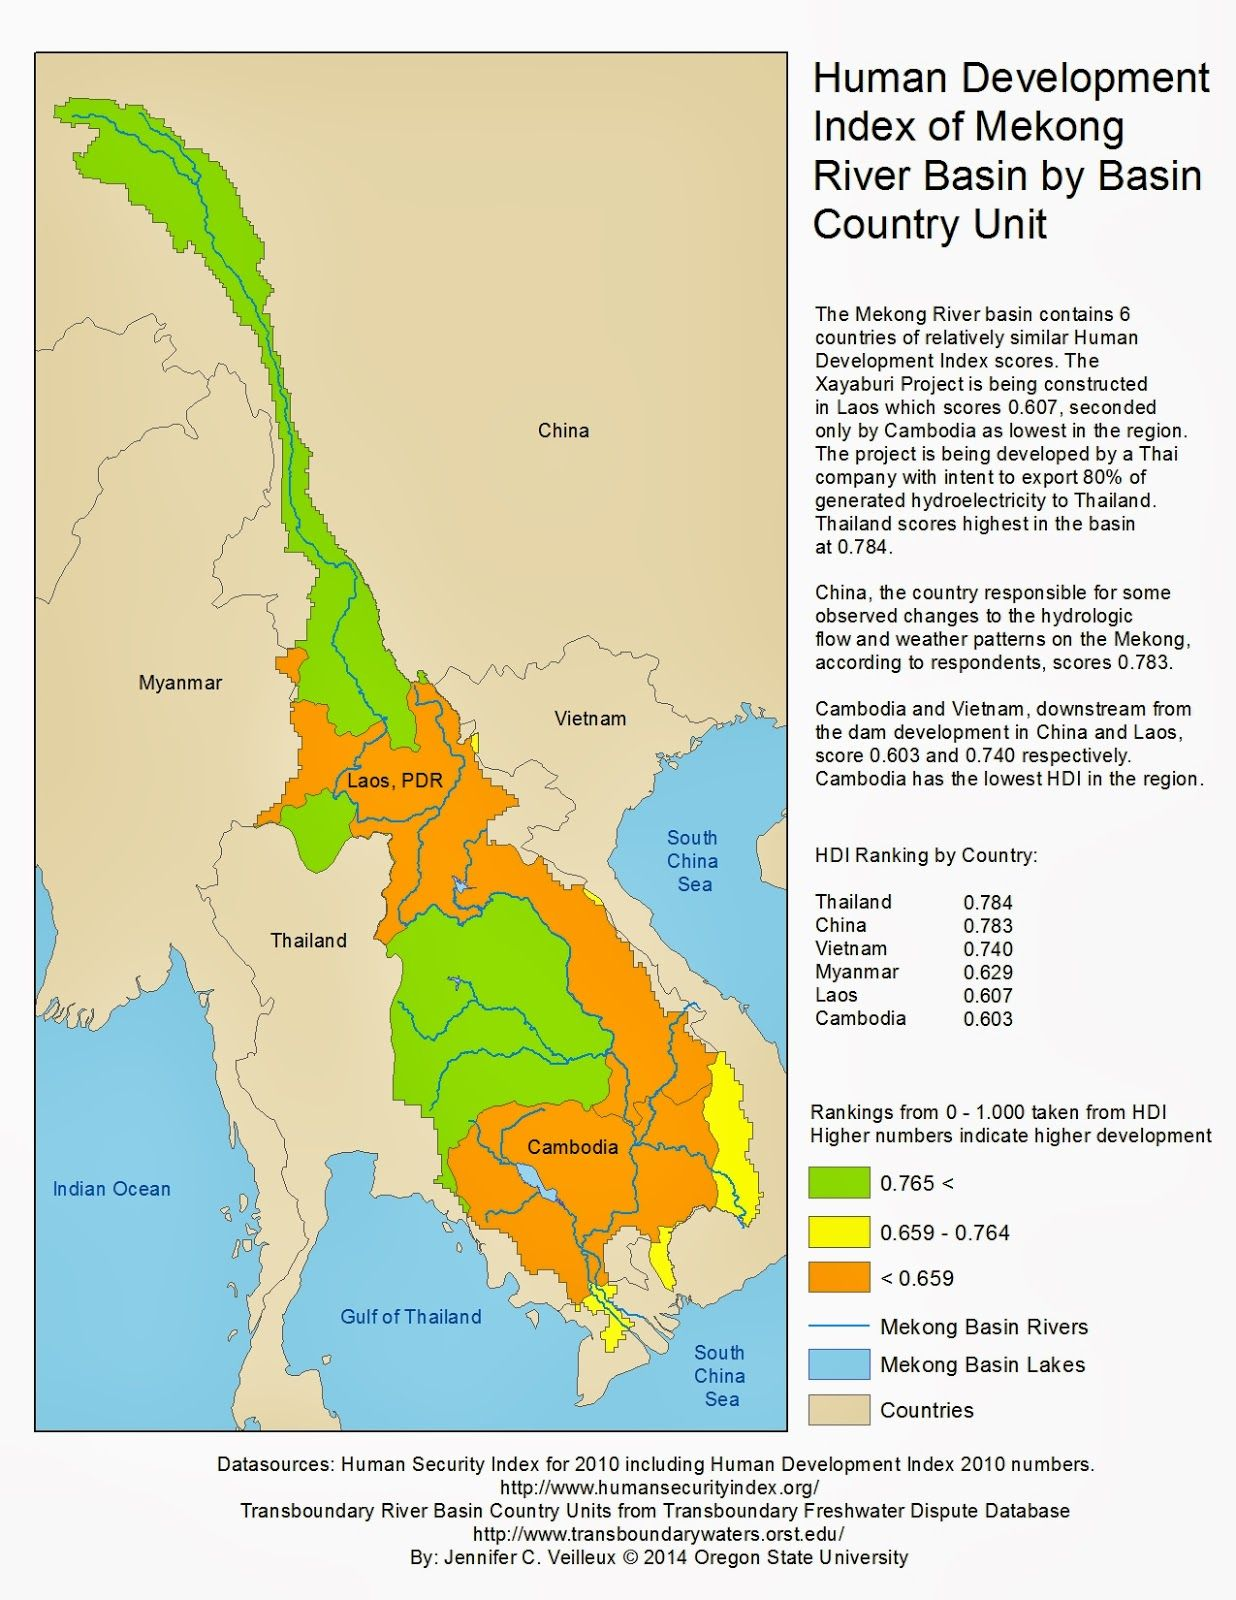 Mekong Basin Human Development Index And Human Security Index